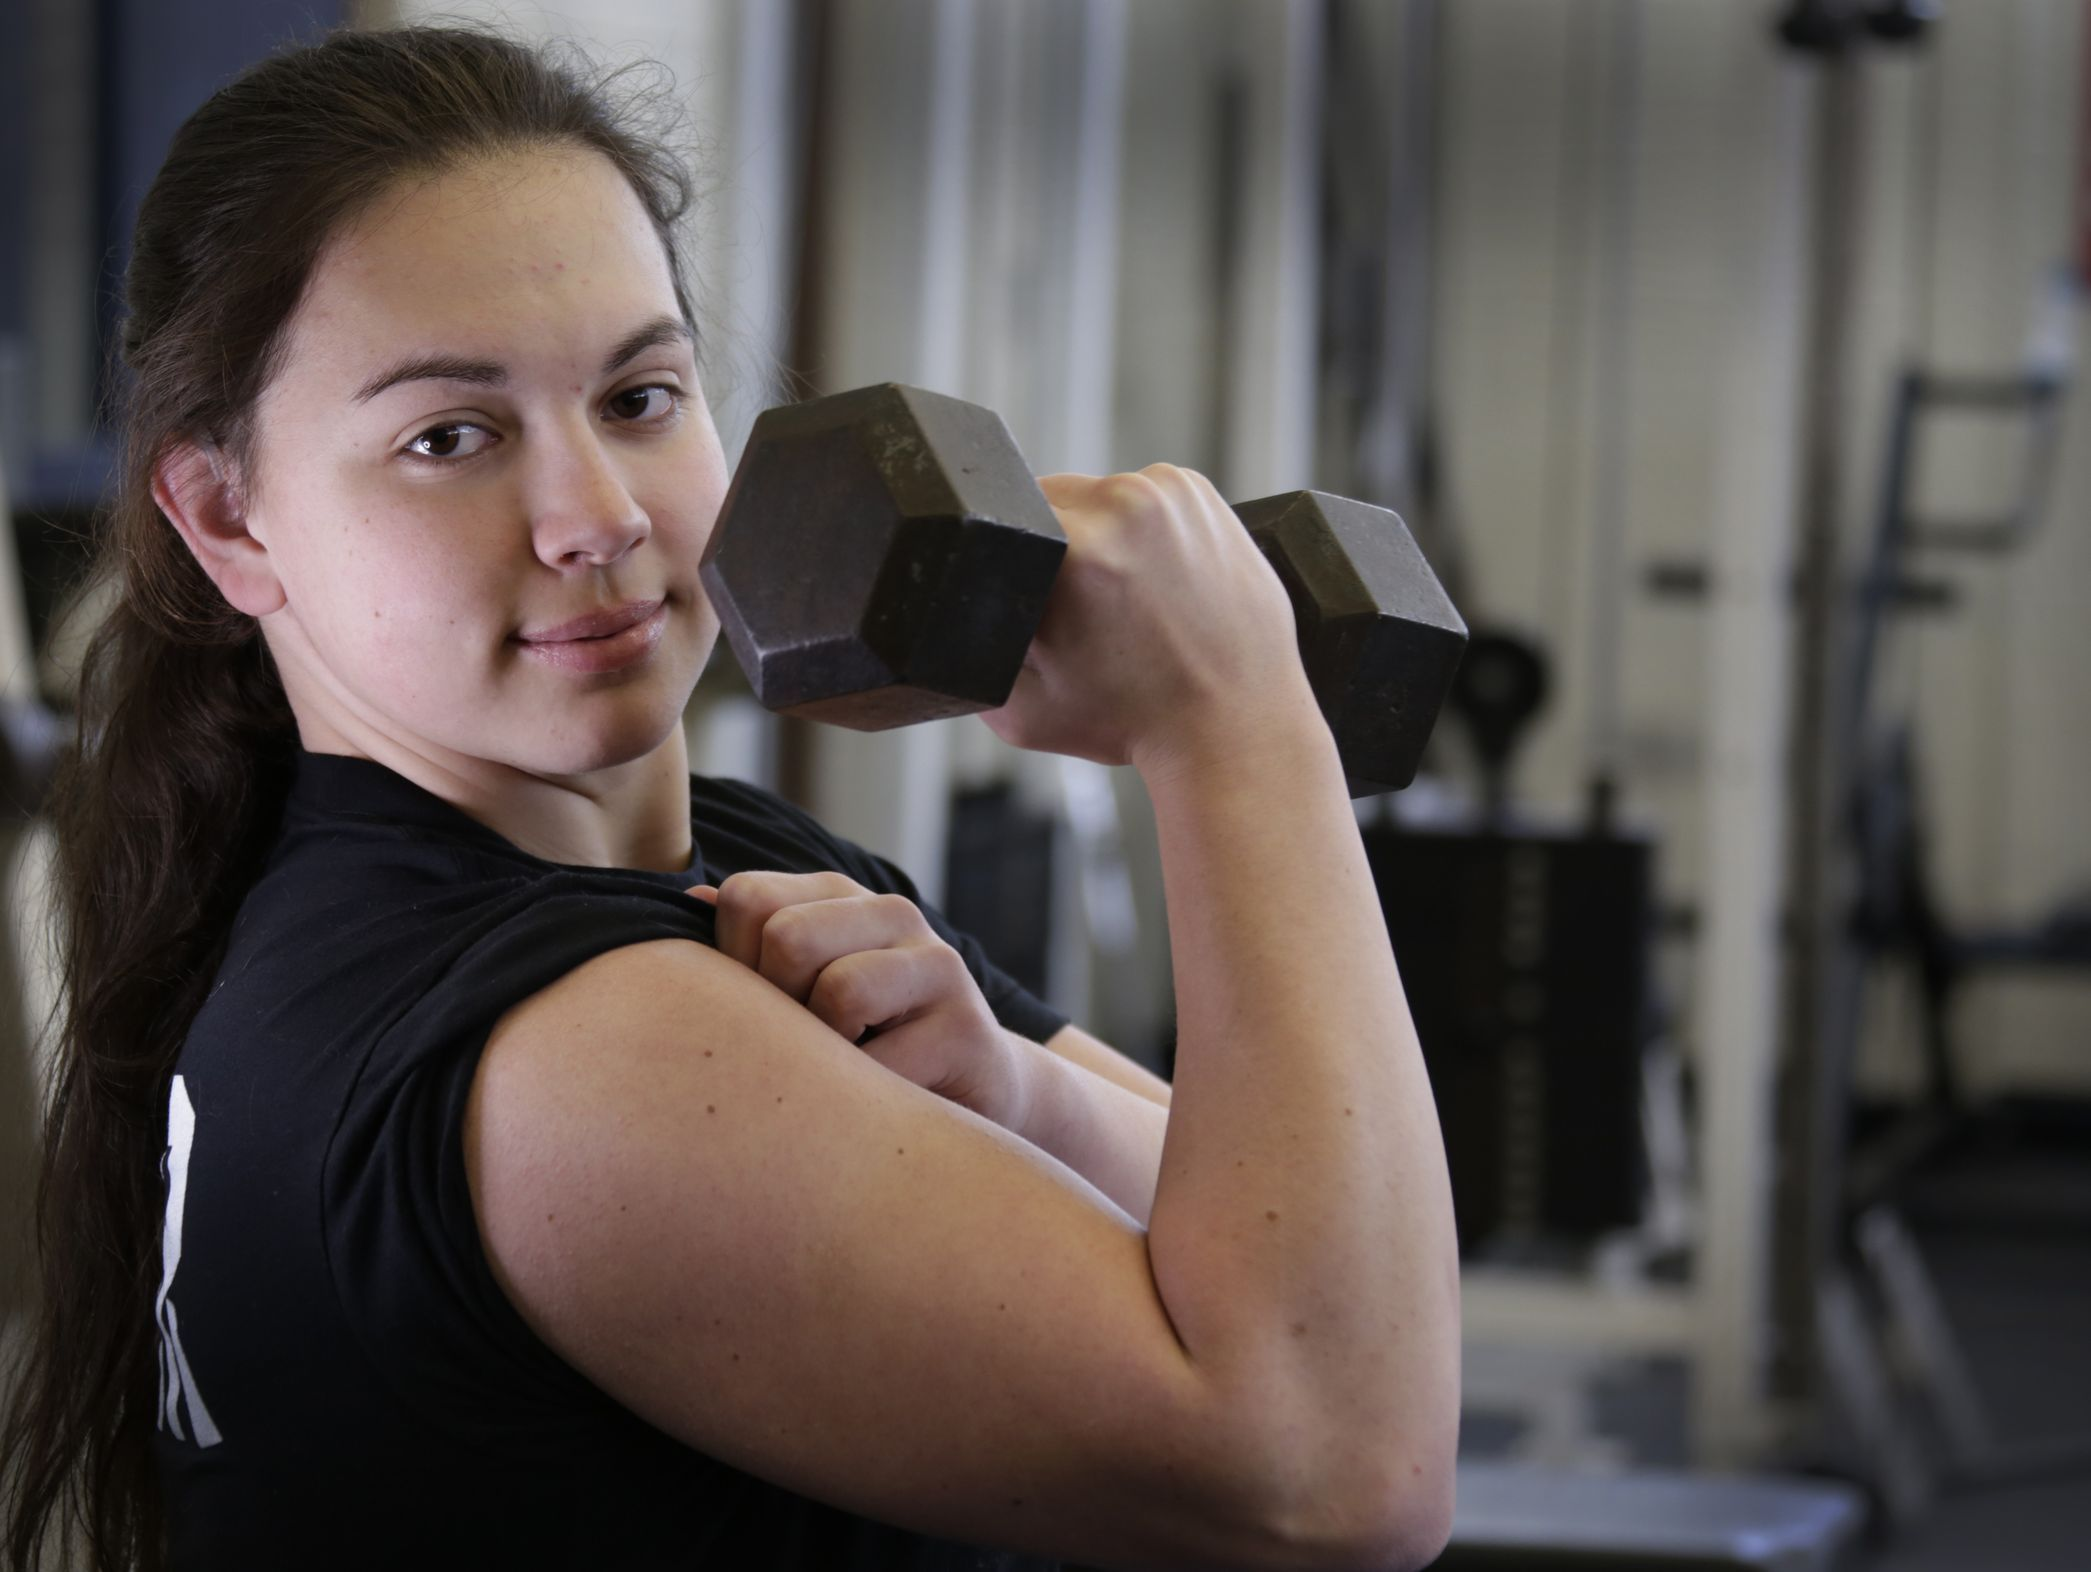 16-year-old Molly Likins of St. Clair is photographed here at St. Clair High School Tuesday Mar. 14, 2017. She just set the state powerlifting bench press record of the 181 pound division by bench pressing 190 pounds.